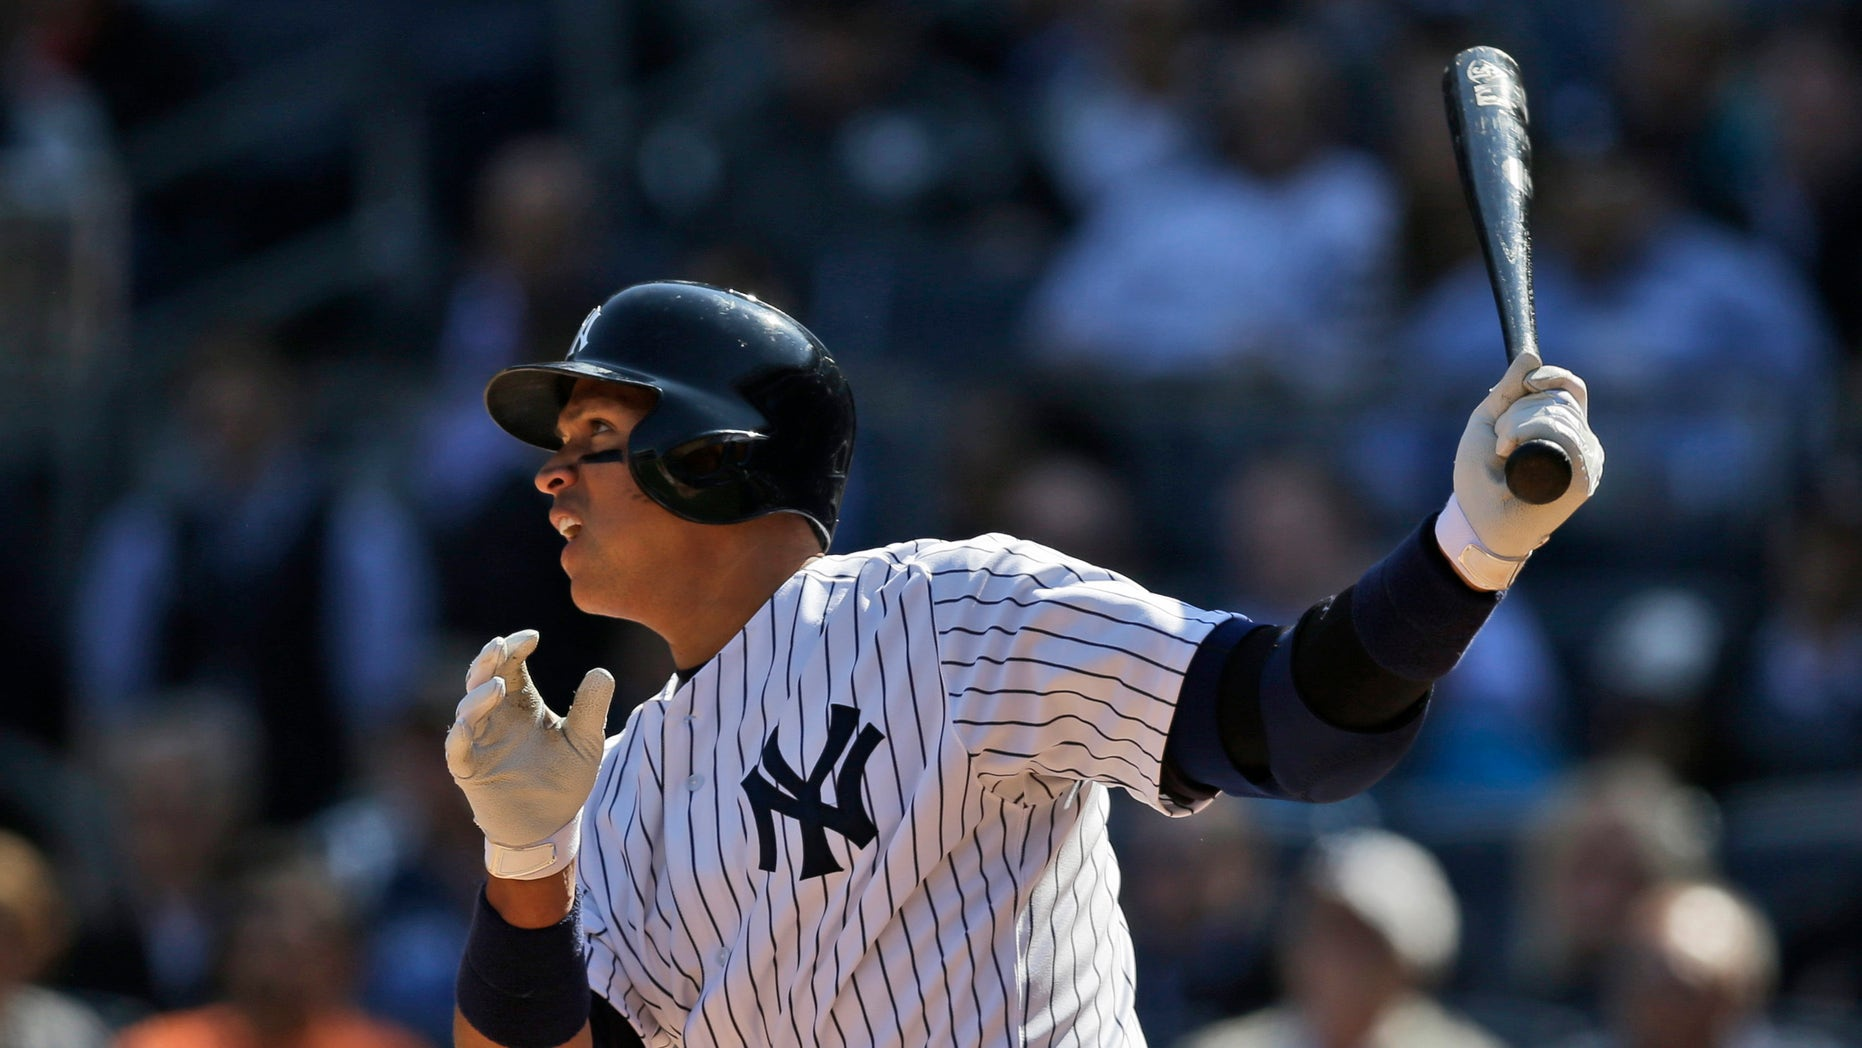 Alex Rodriguez after a base hit against the Toronto Blue Jays at Yankee Stadium, Monday, April 6, 2015.